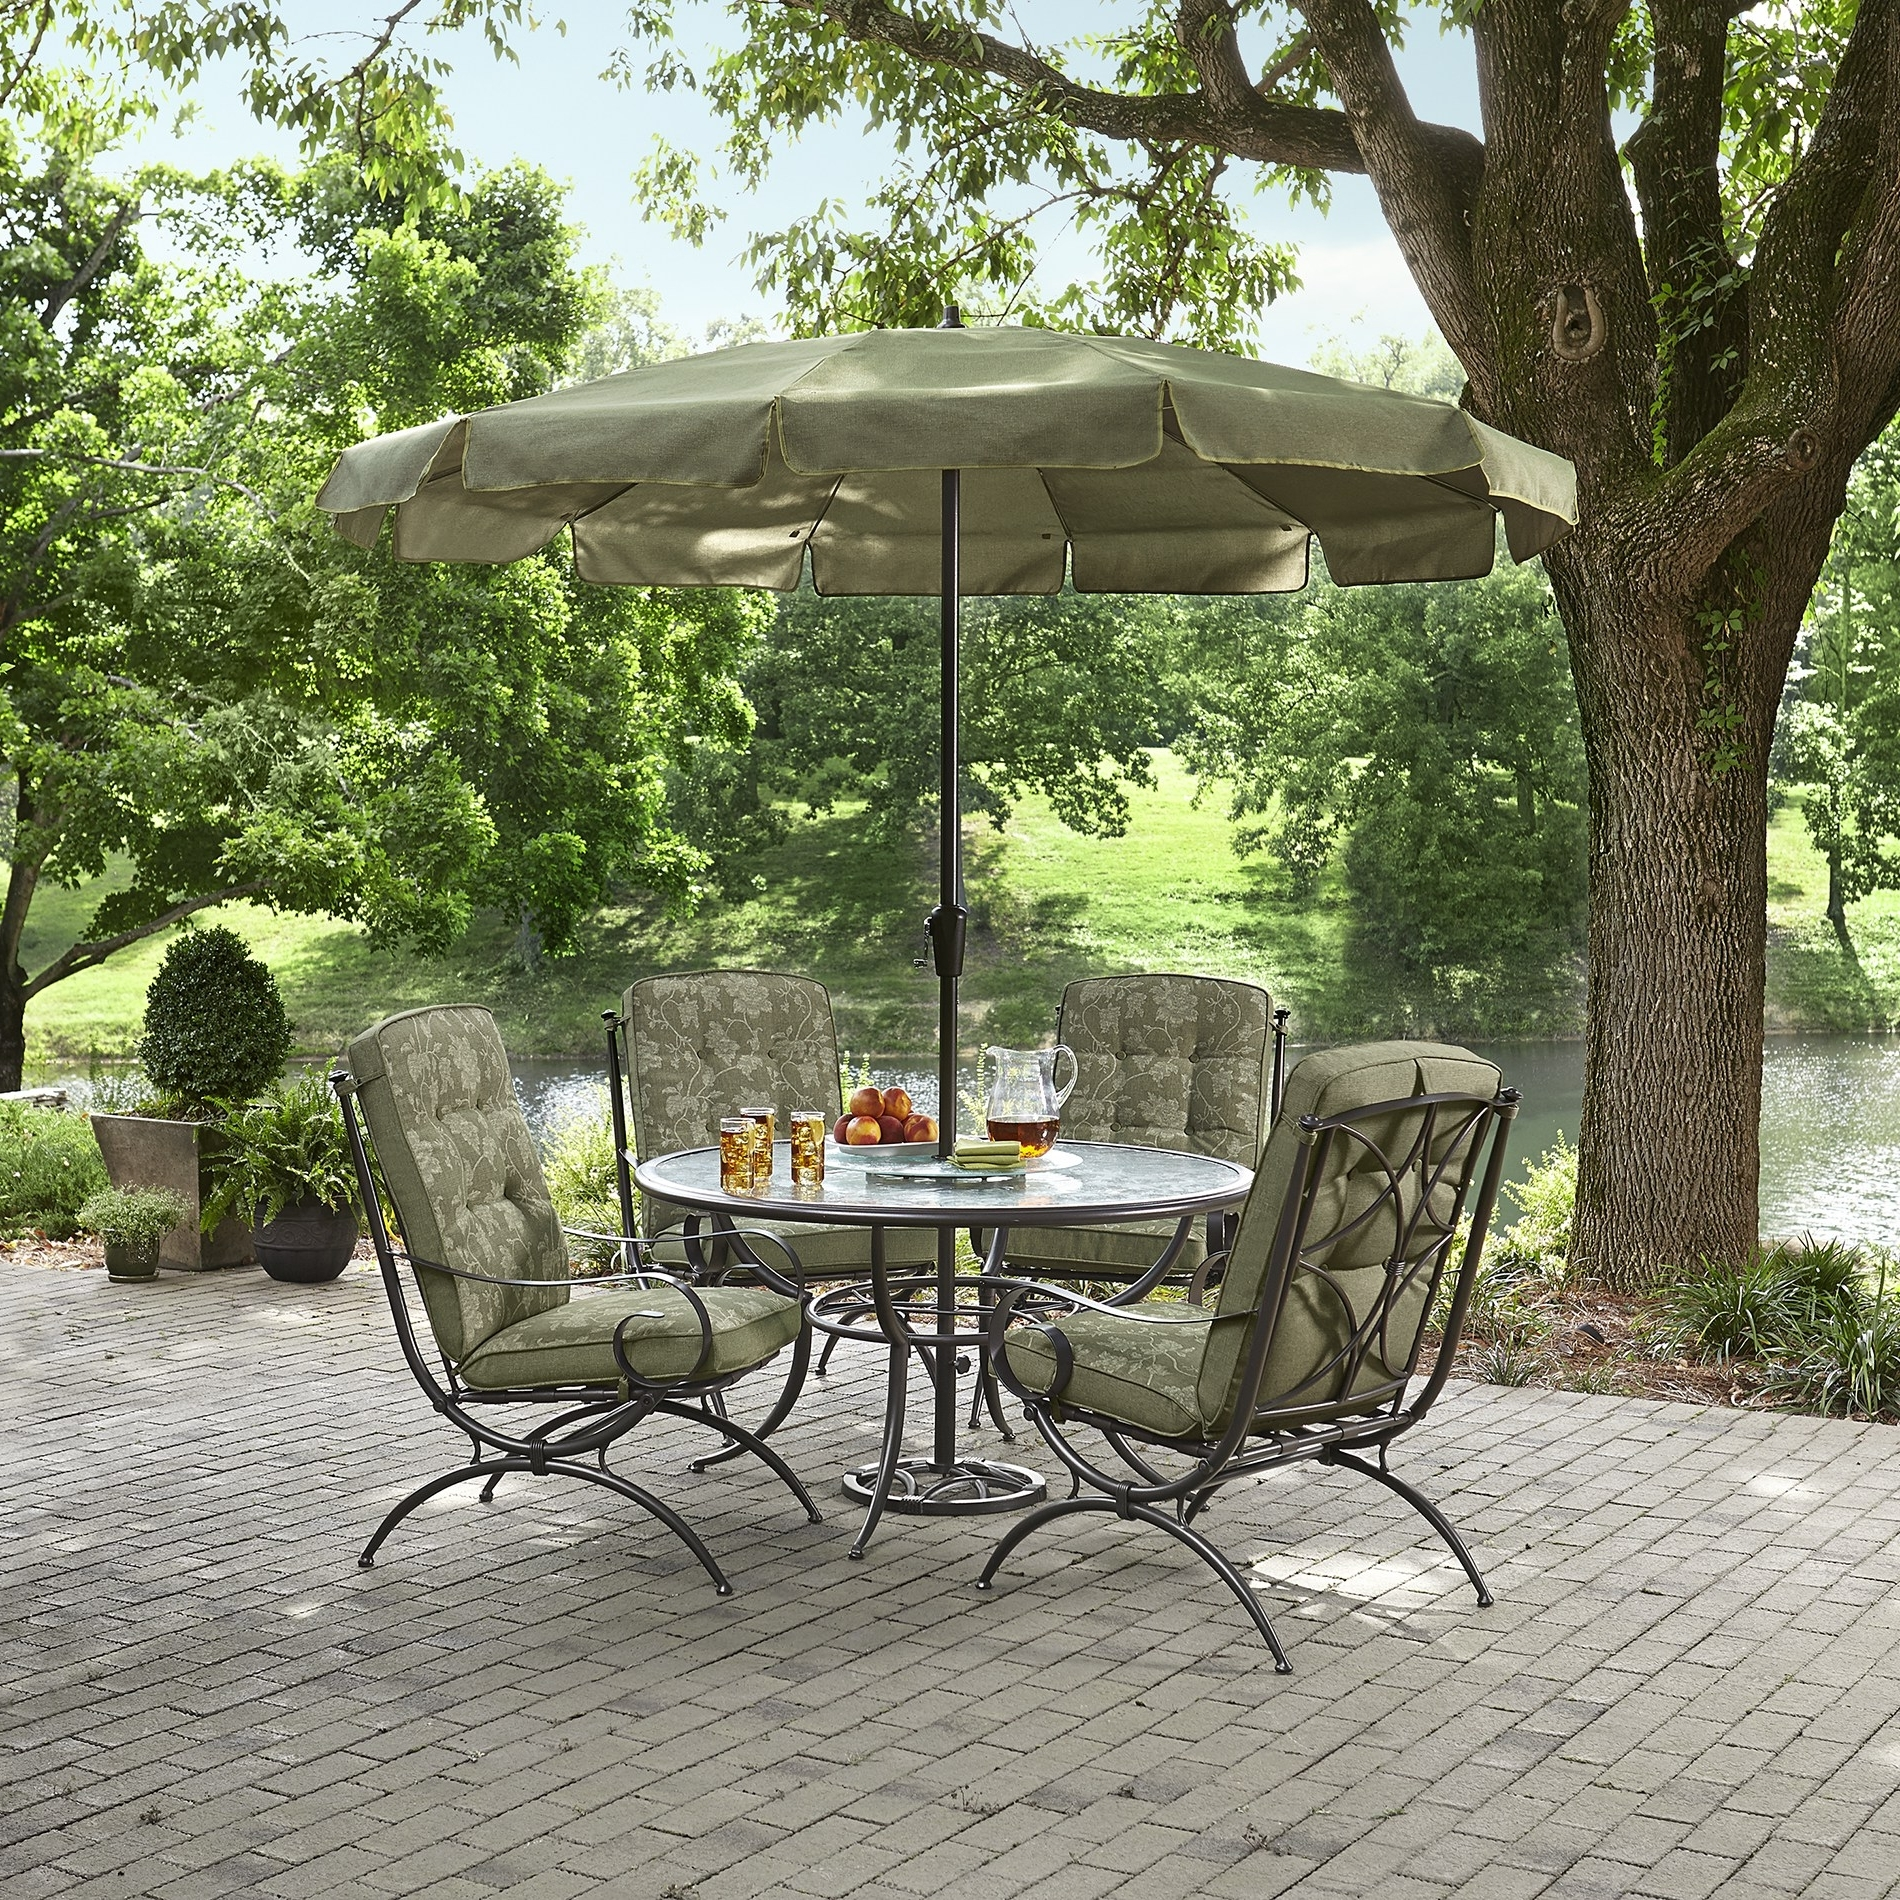 Best And Newest Sears Patio Umbrellas Pertaining To Peaceably Cheap Wicker Furniture Kmart Patio Umbrellas Sears Patio (View 9 of 20)